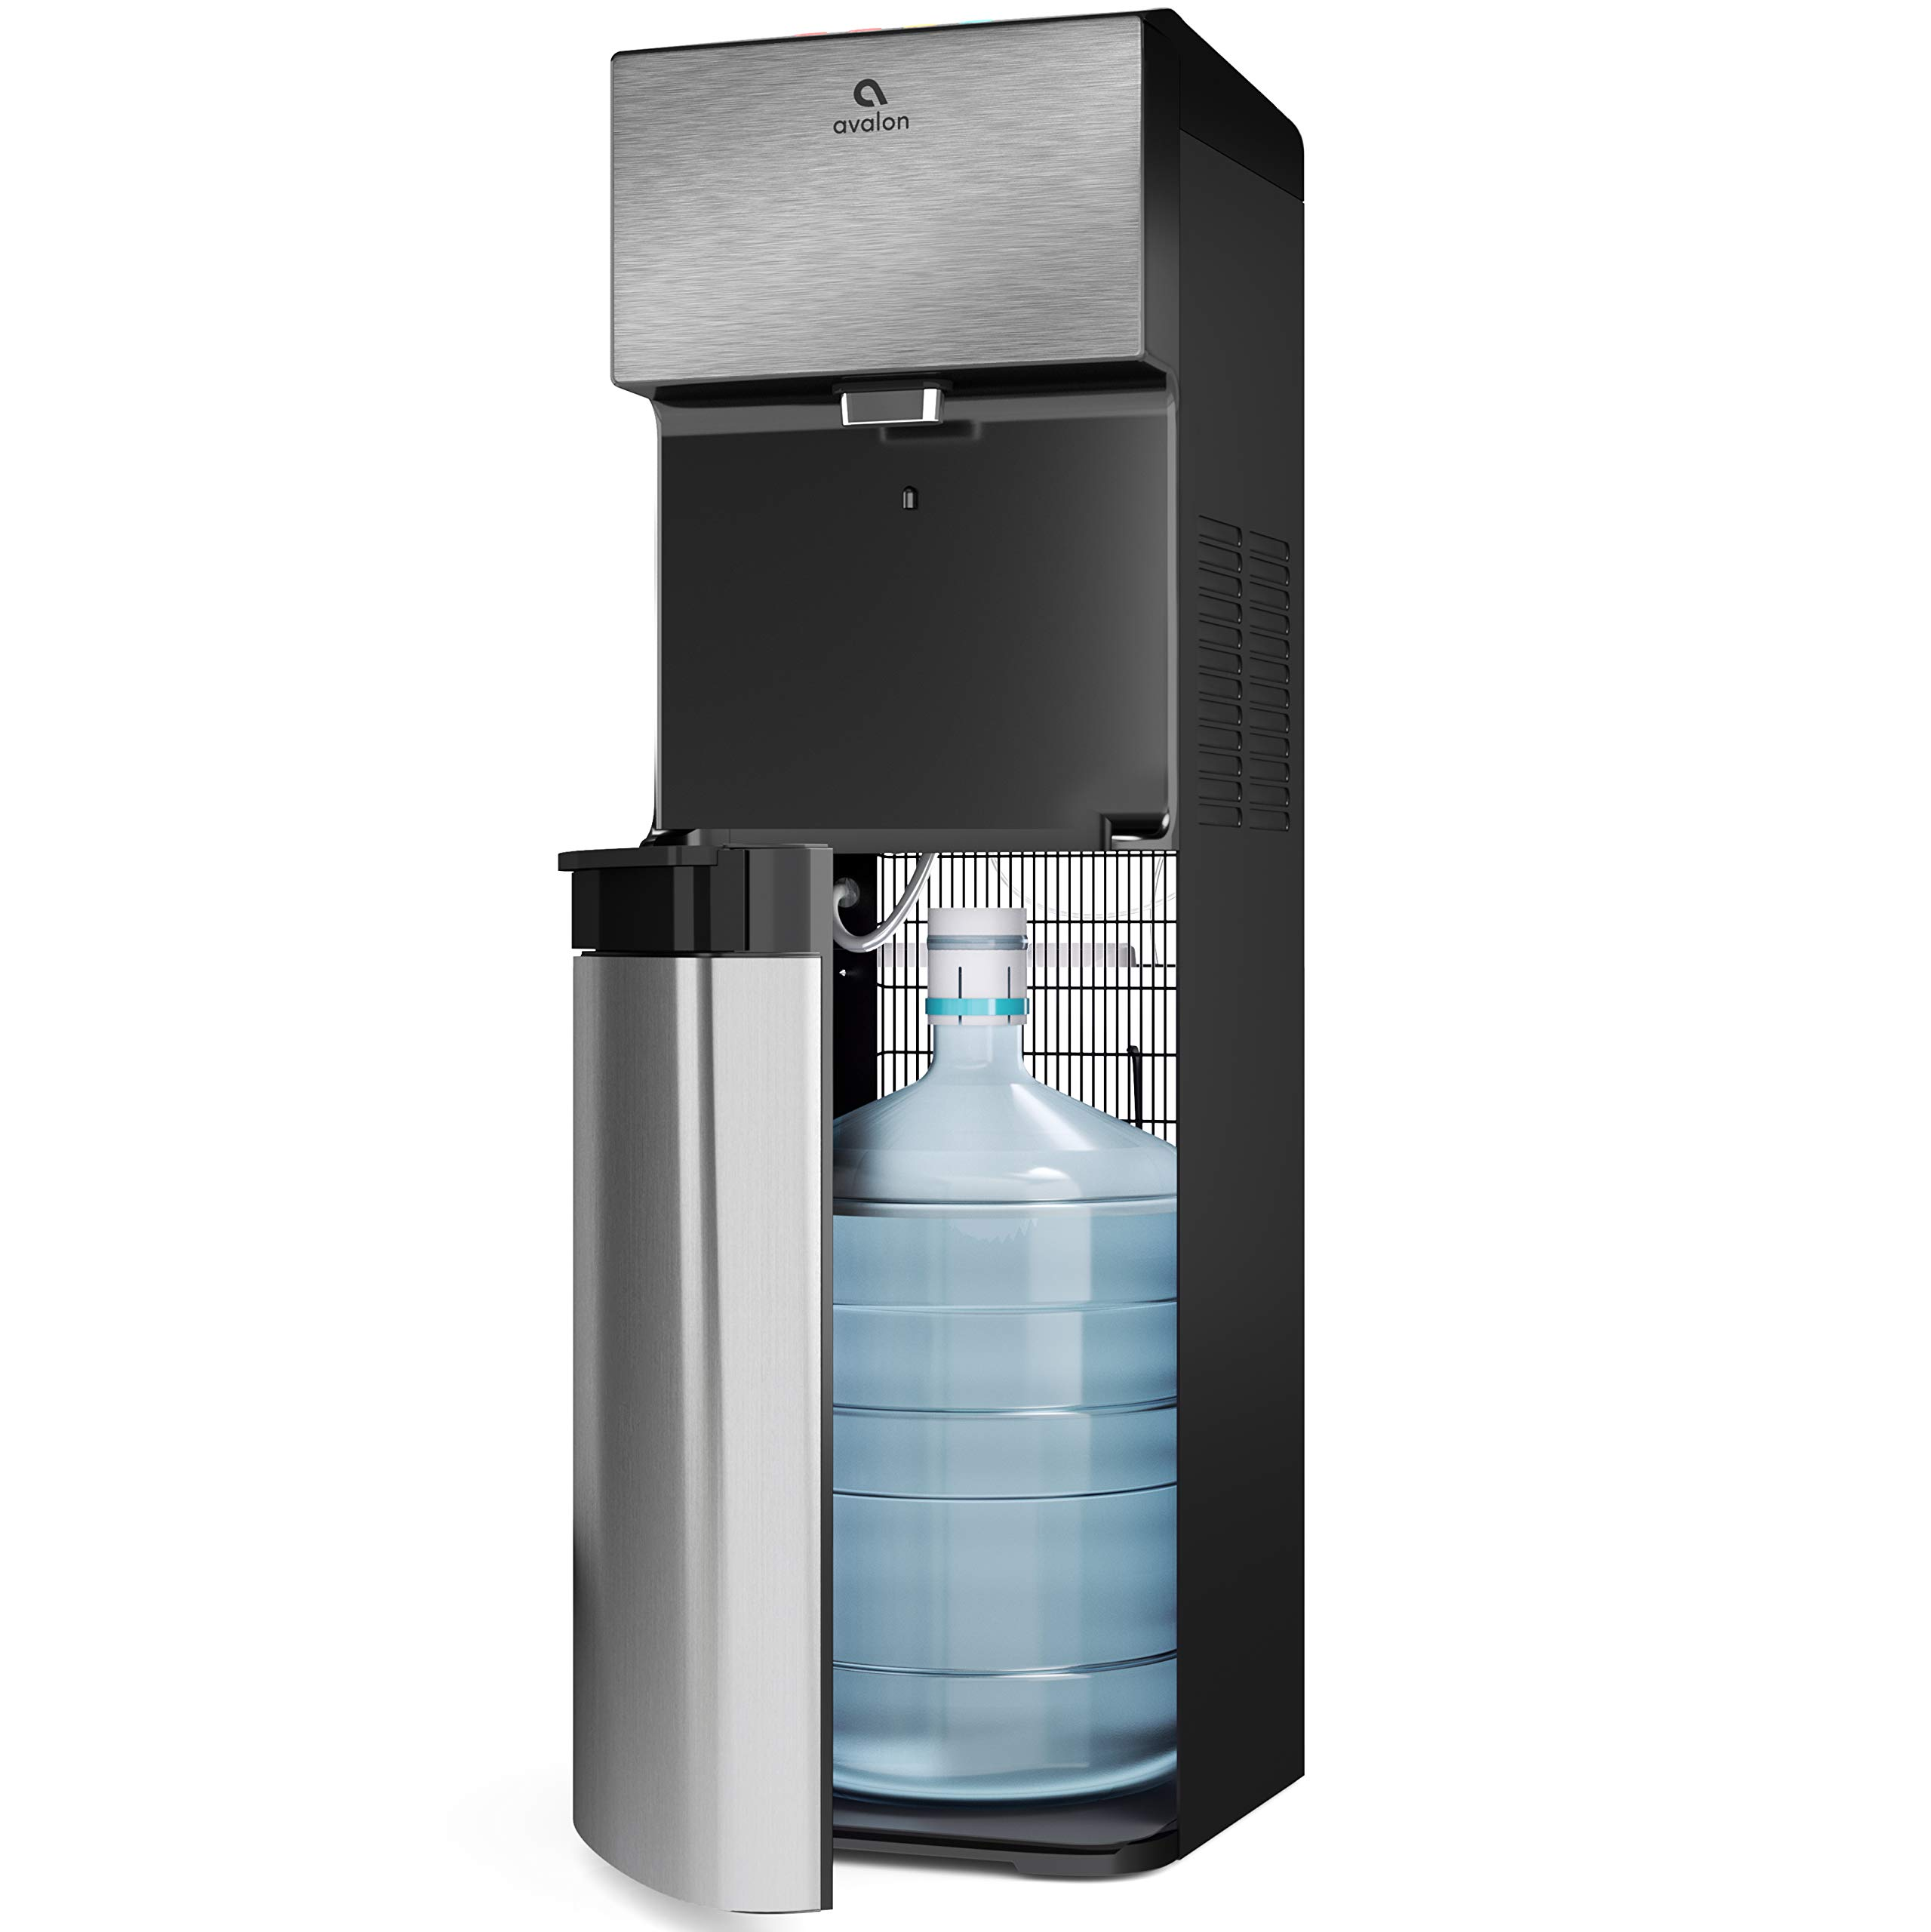 Avalon A14 Electronic Bottom Loading Cooler Water Dispenser-3 Temperatures, Self Cleaning by Avalon